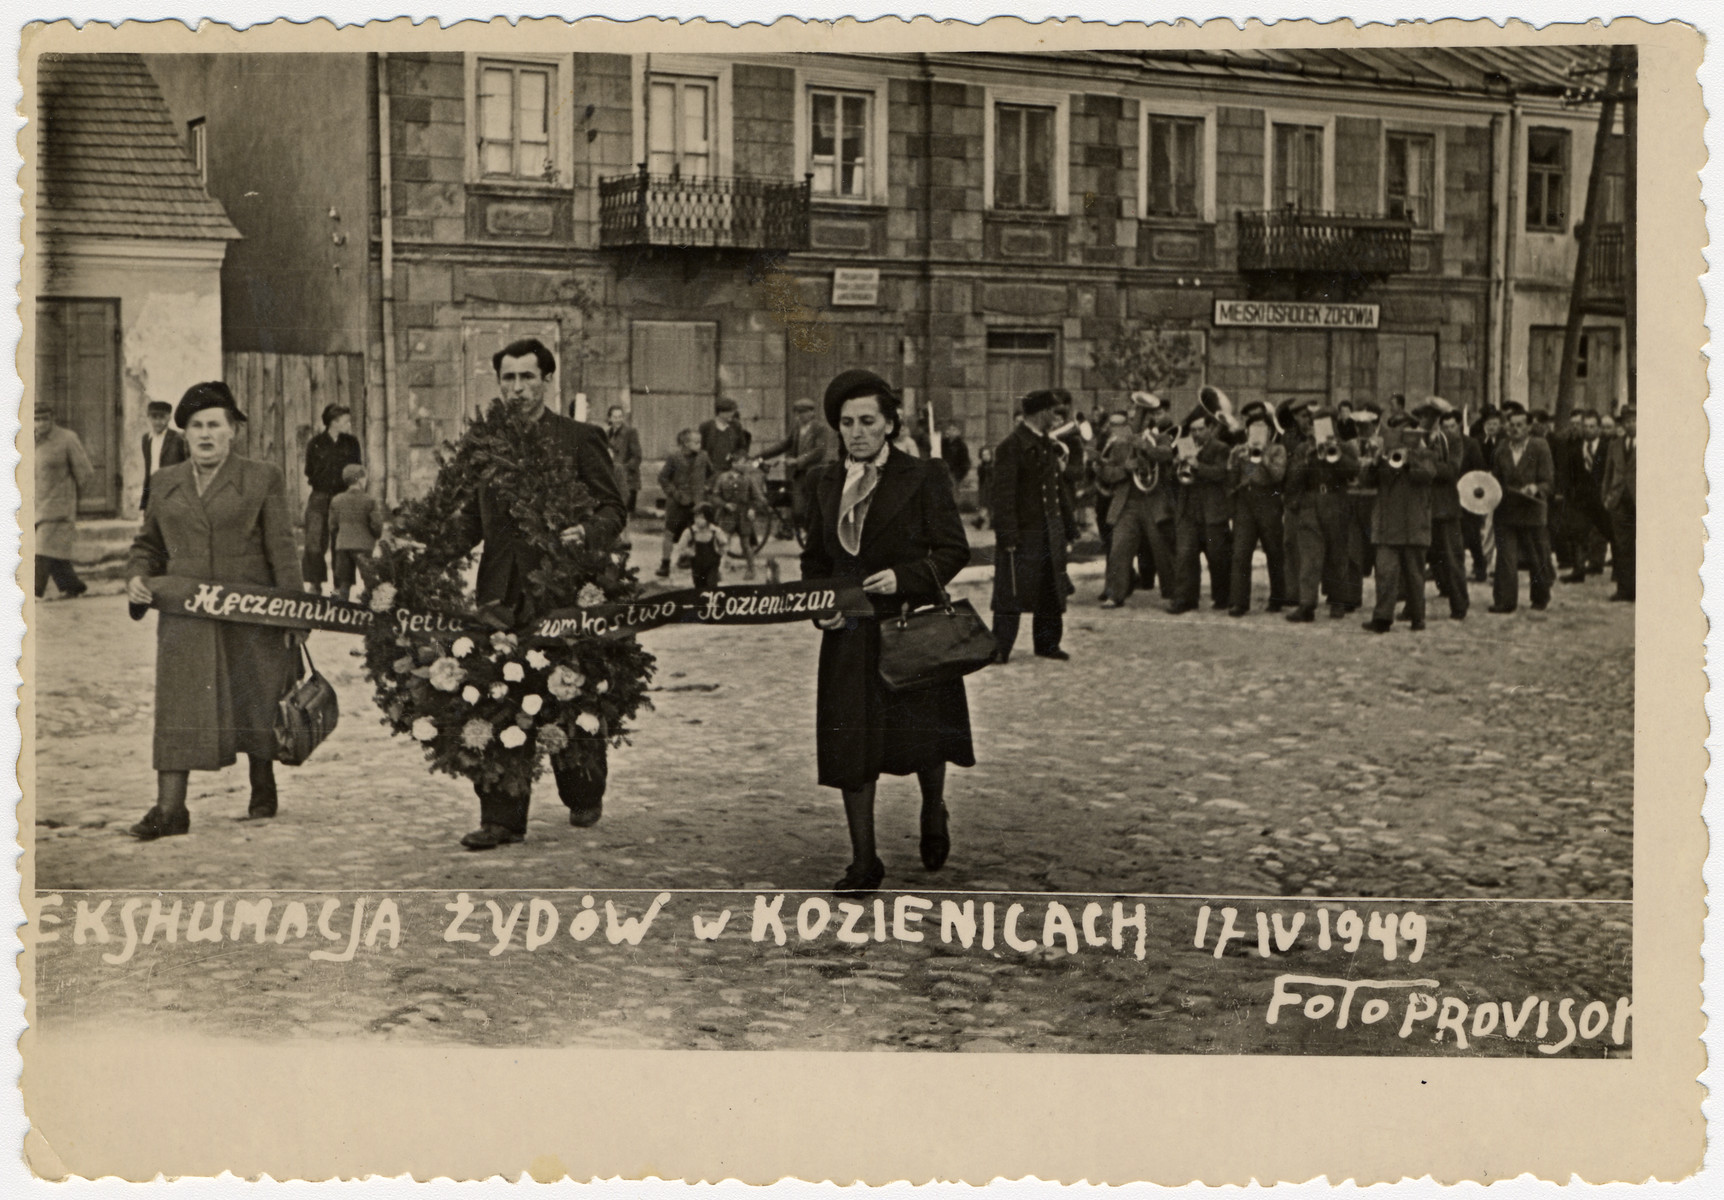 Survivors carrying a wreath and banner march in a funeral procession during the exhumation and reburial ceremony in Kozienice of Nazi victims.